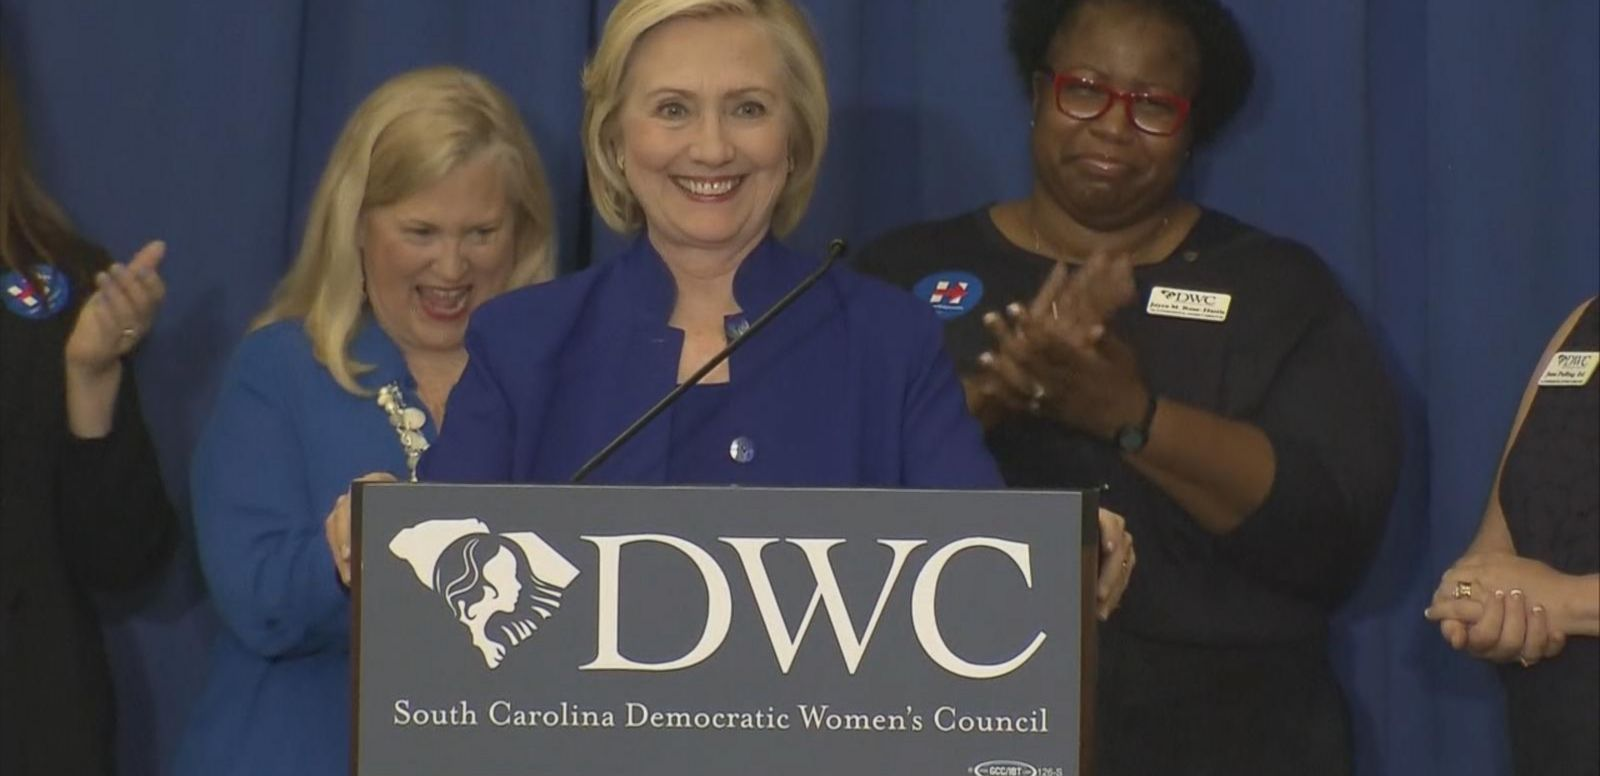 VIDEO: Hillary Clinton: My Hair Won't Turn White in the White House